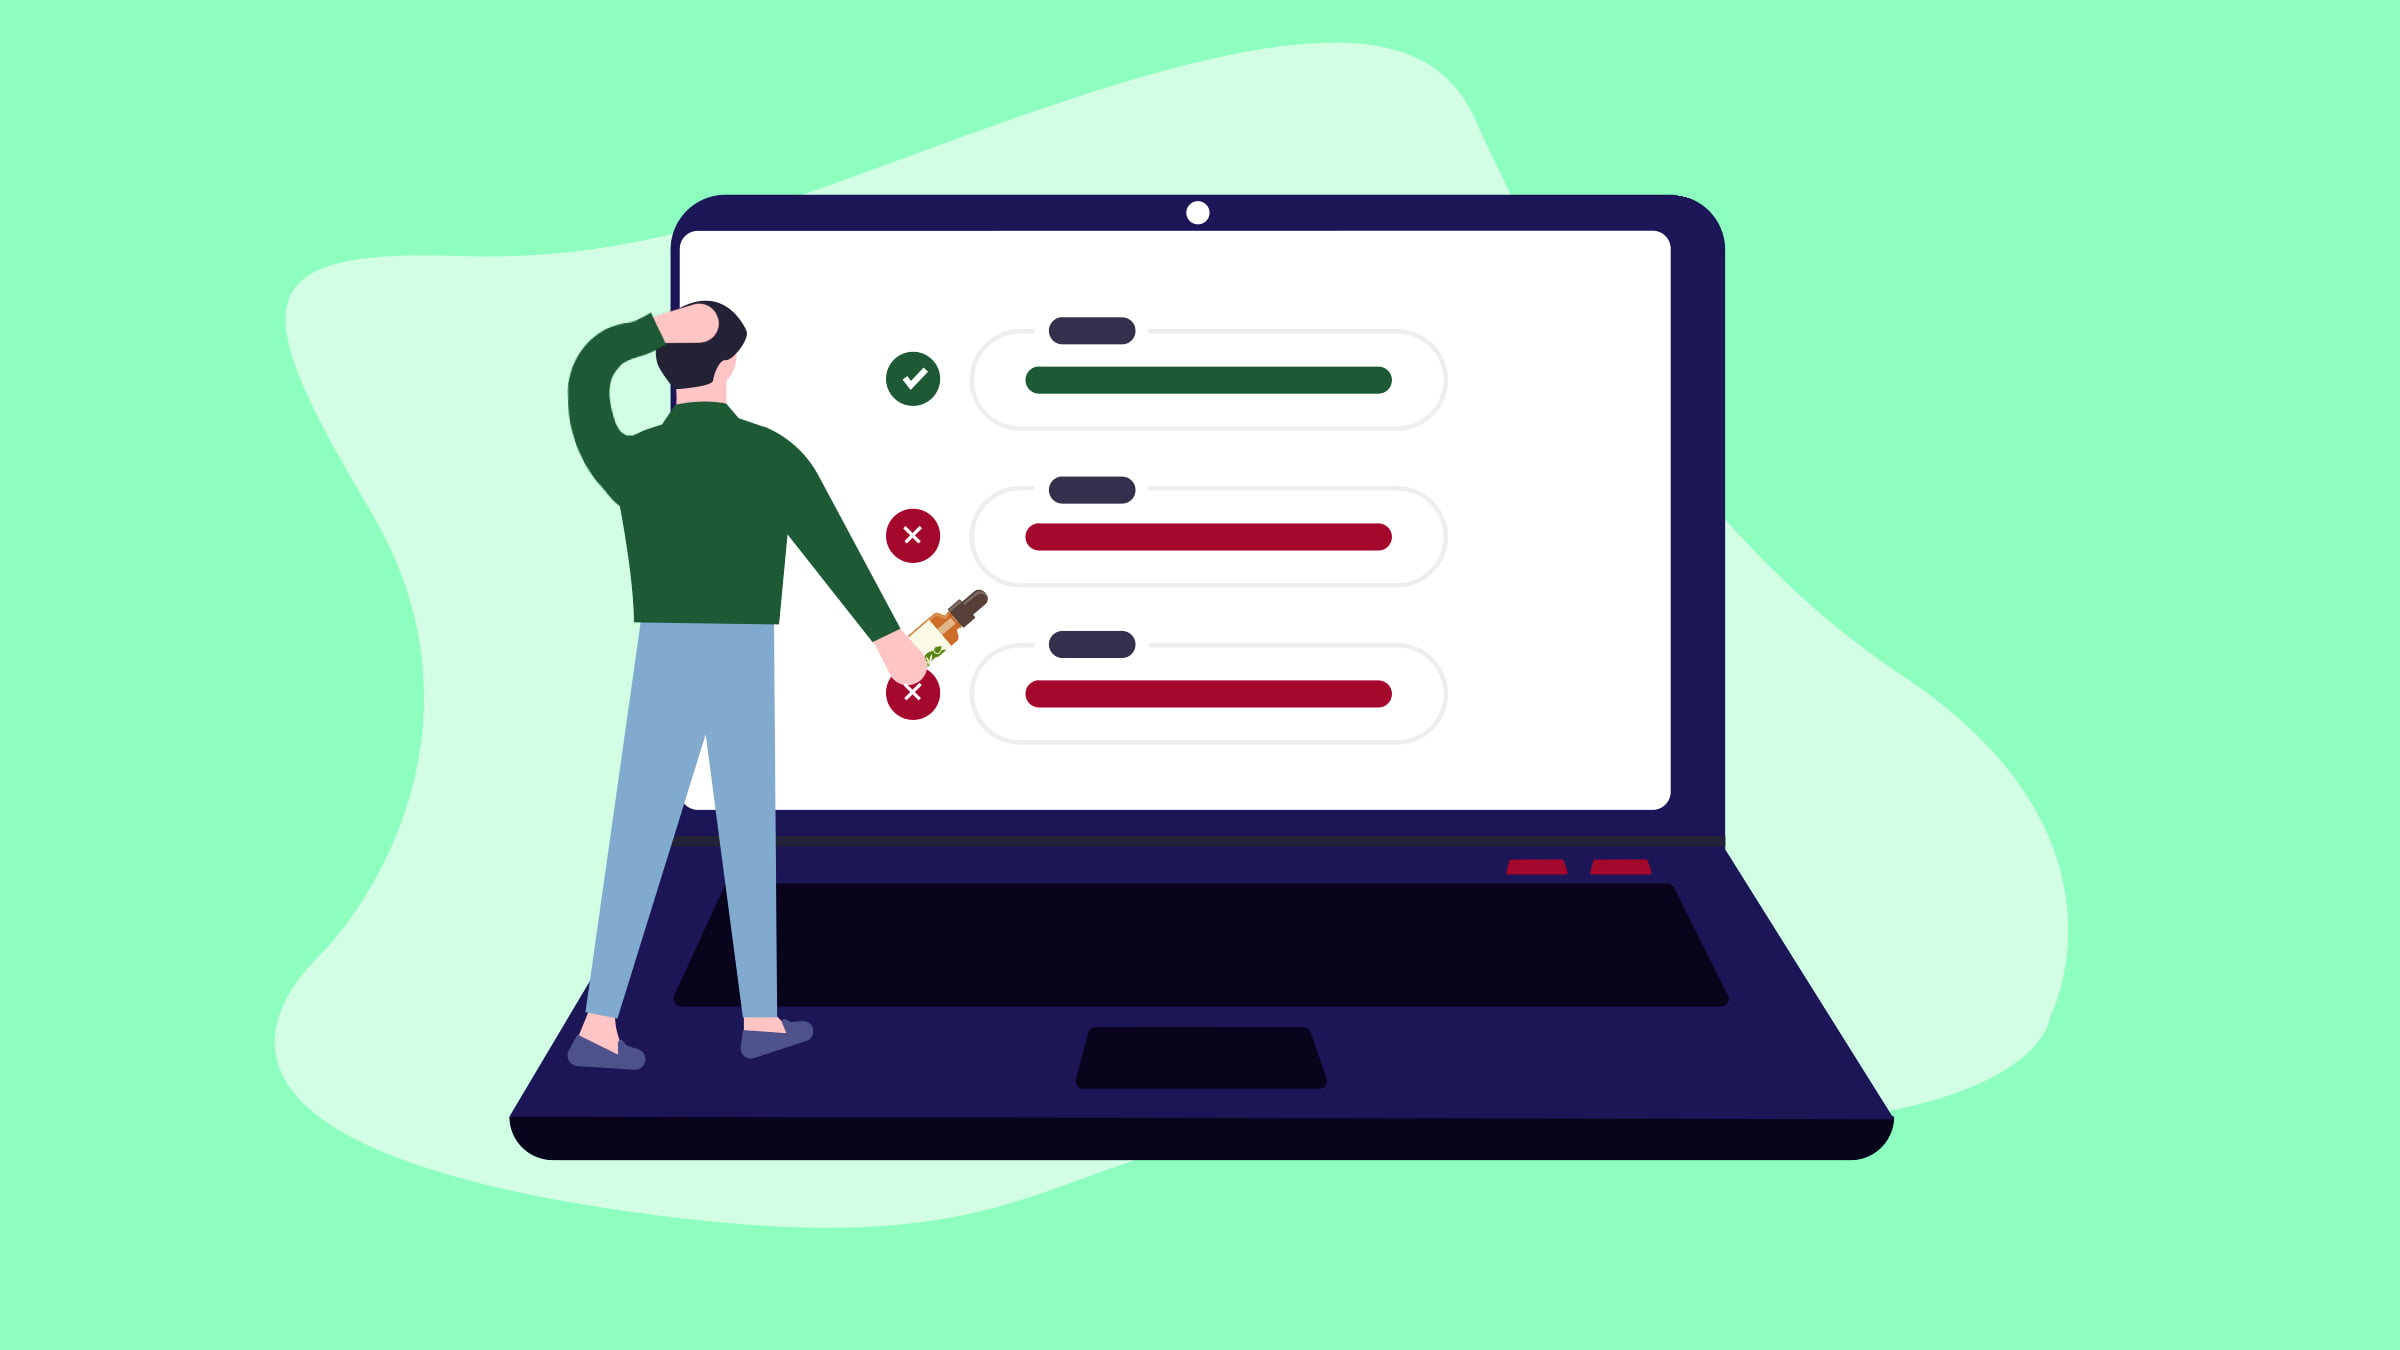 Illustration of a man standing in front of his laptop choosing CBD oils